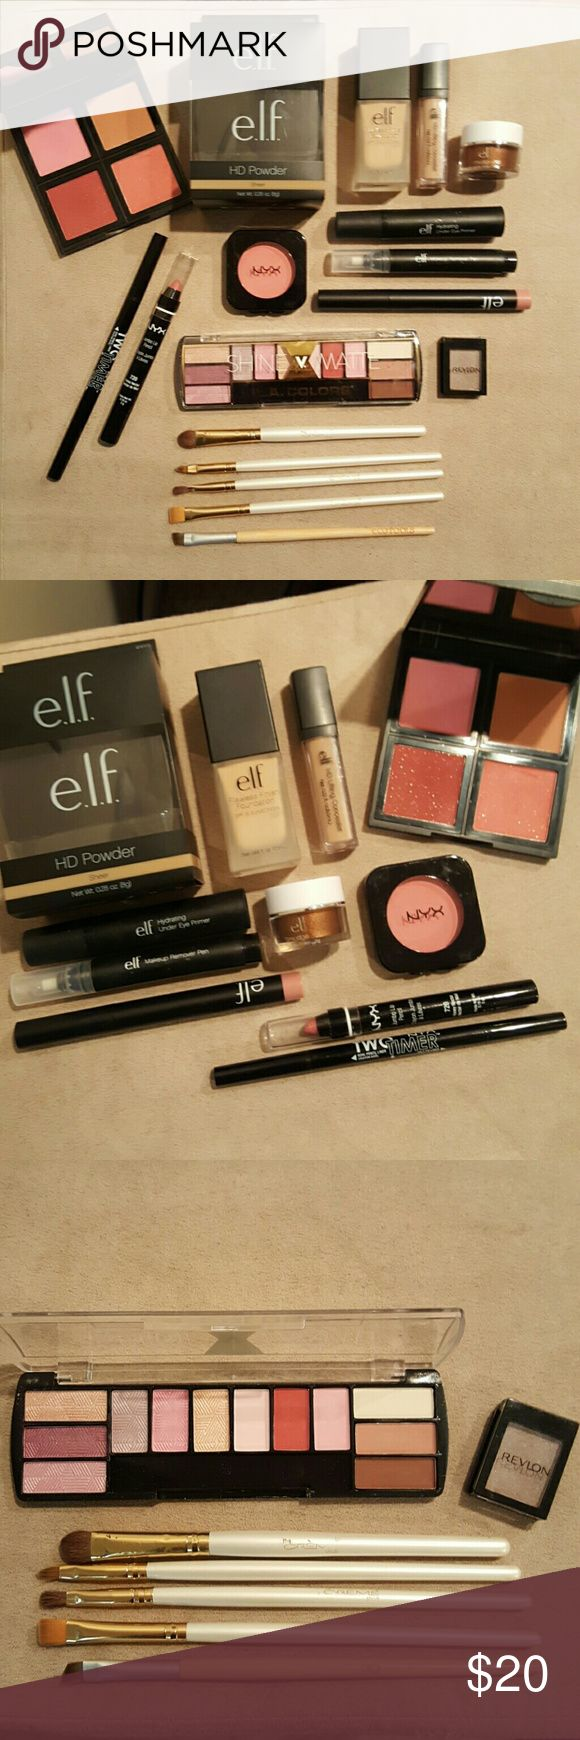 Elf, NYX, LA Colors 15 Piece Makeup/Beauty Bundle! Huge makeup bundle! Most new or barely used! Message me if you have any questions on colors/shades.  New: Elf HD powder, flawless finish foundation, blush palette, smudge pot, lip color NYX blush, two timer eye liner, jumbo lip pencil LA Colors shine vs. matte eyeshadow palette Revlon single eyeshadow    Barely used: Elf makeup remover pen, under eye primer, HD concealer The Creme eye brushes  Eco Tools liner brush, ELF Makeup